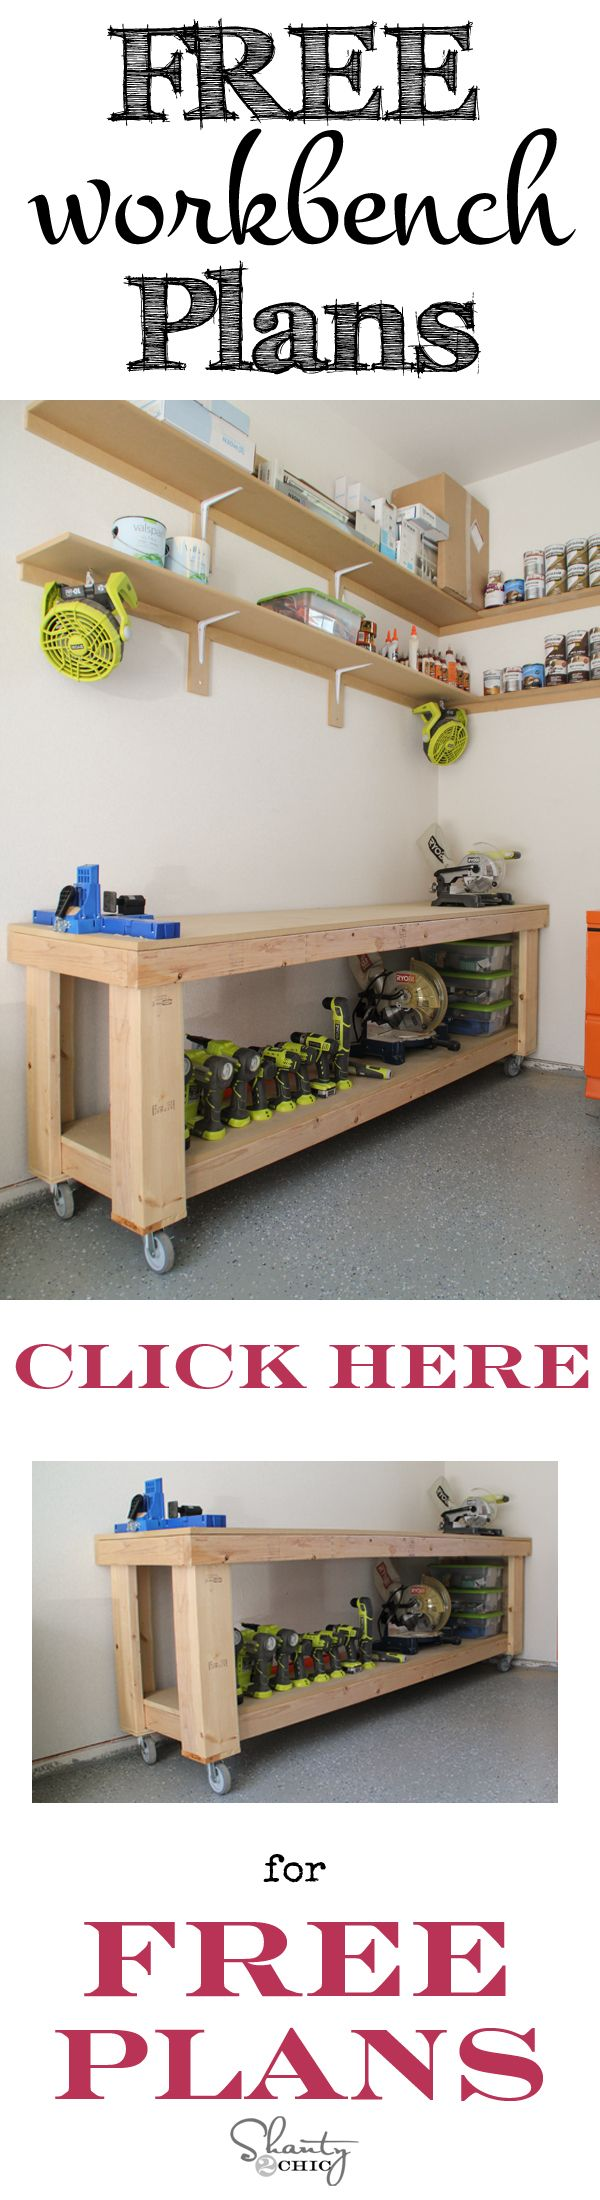 Diy garage plans free woodworking projects plans for Diy garage plans